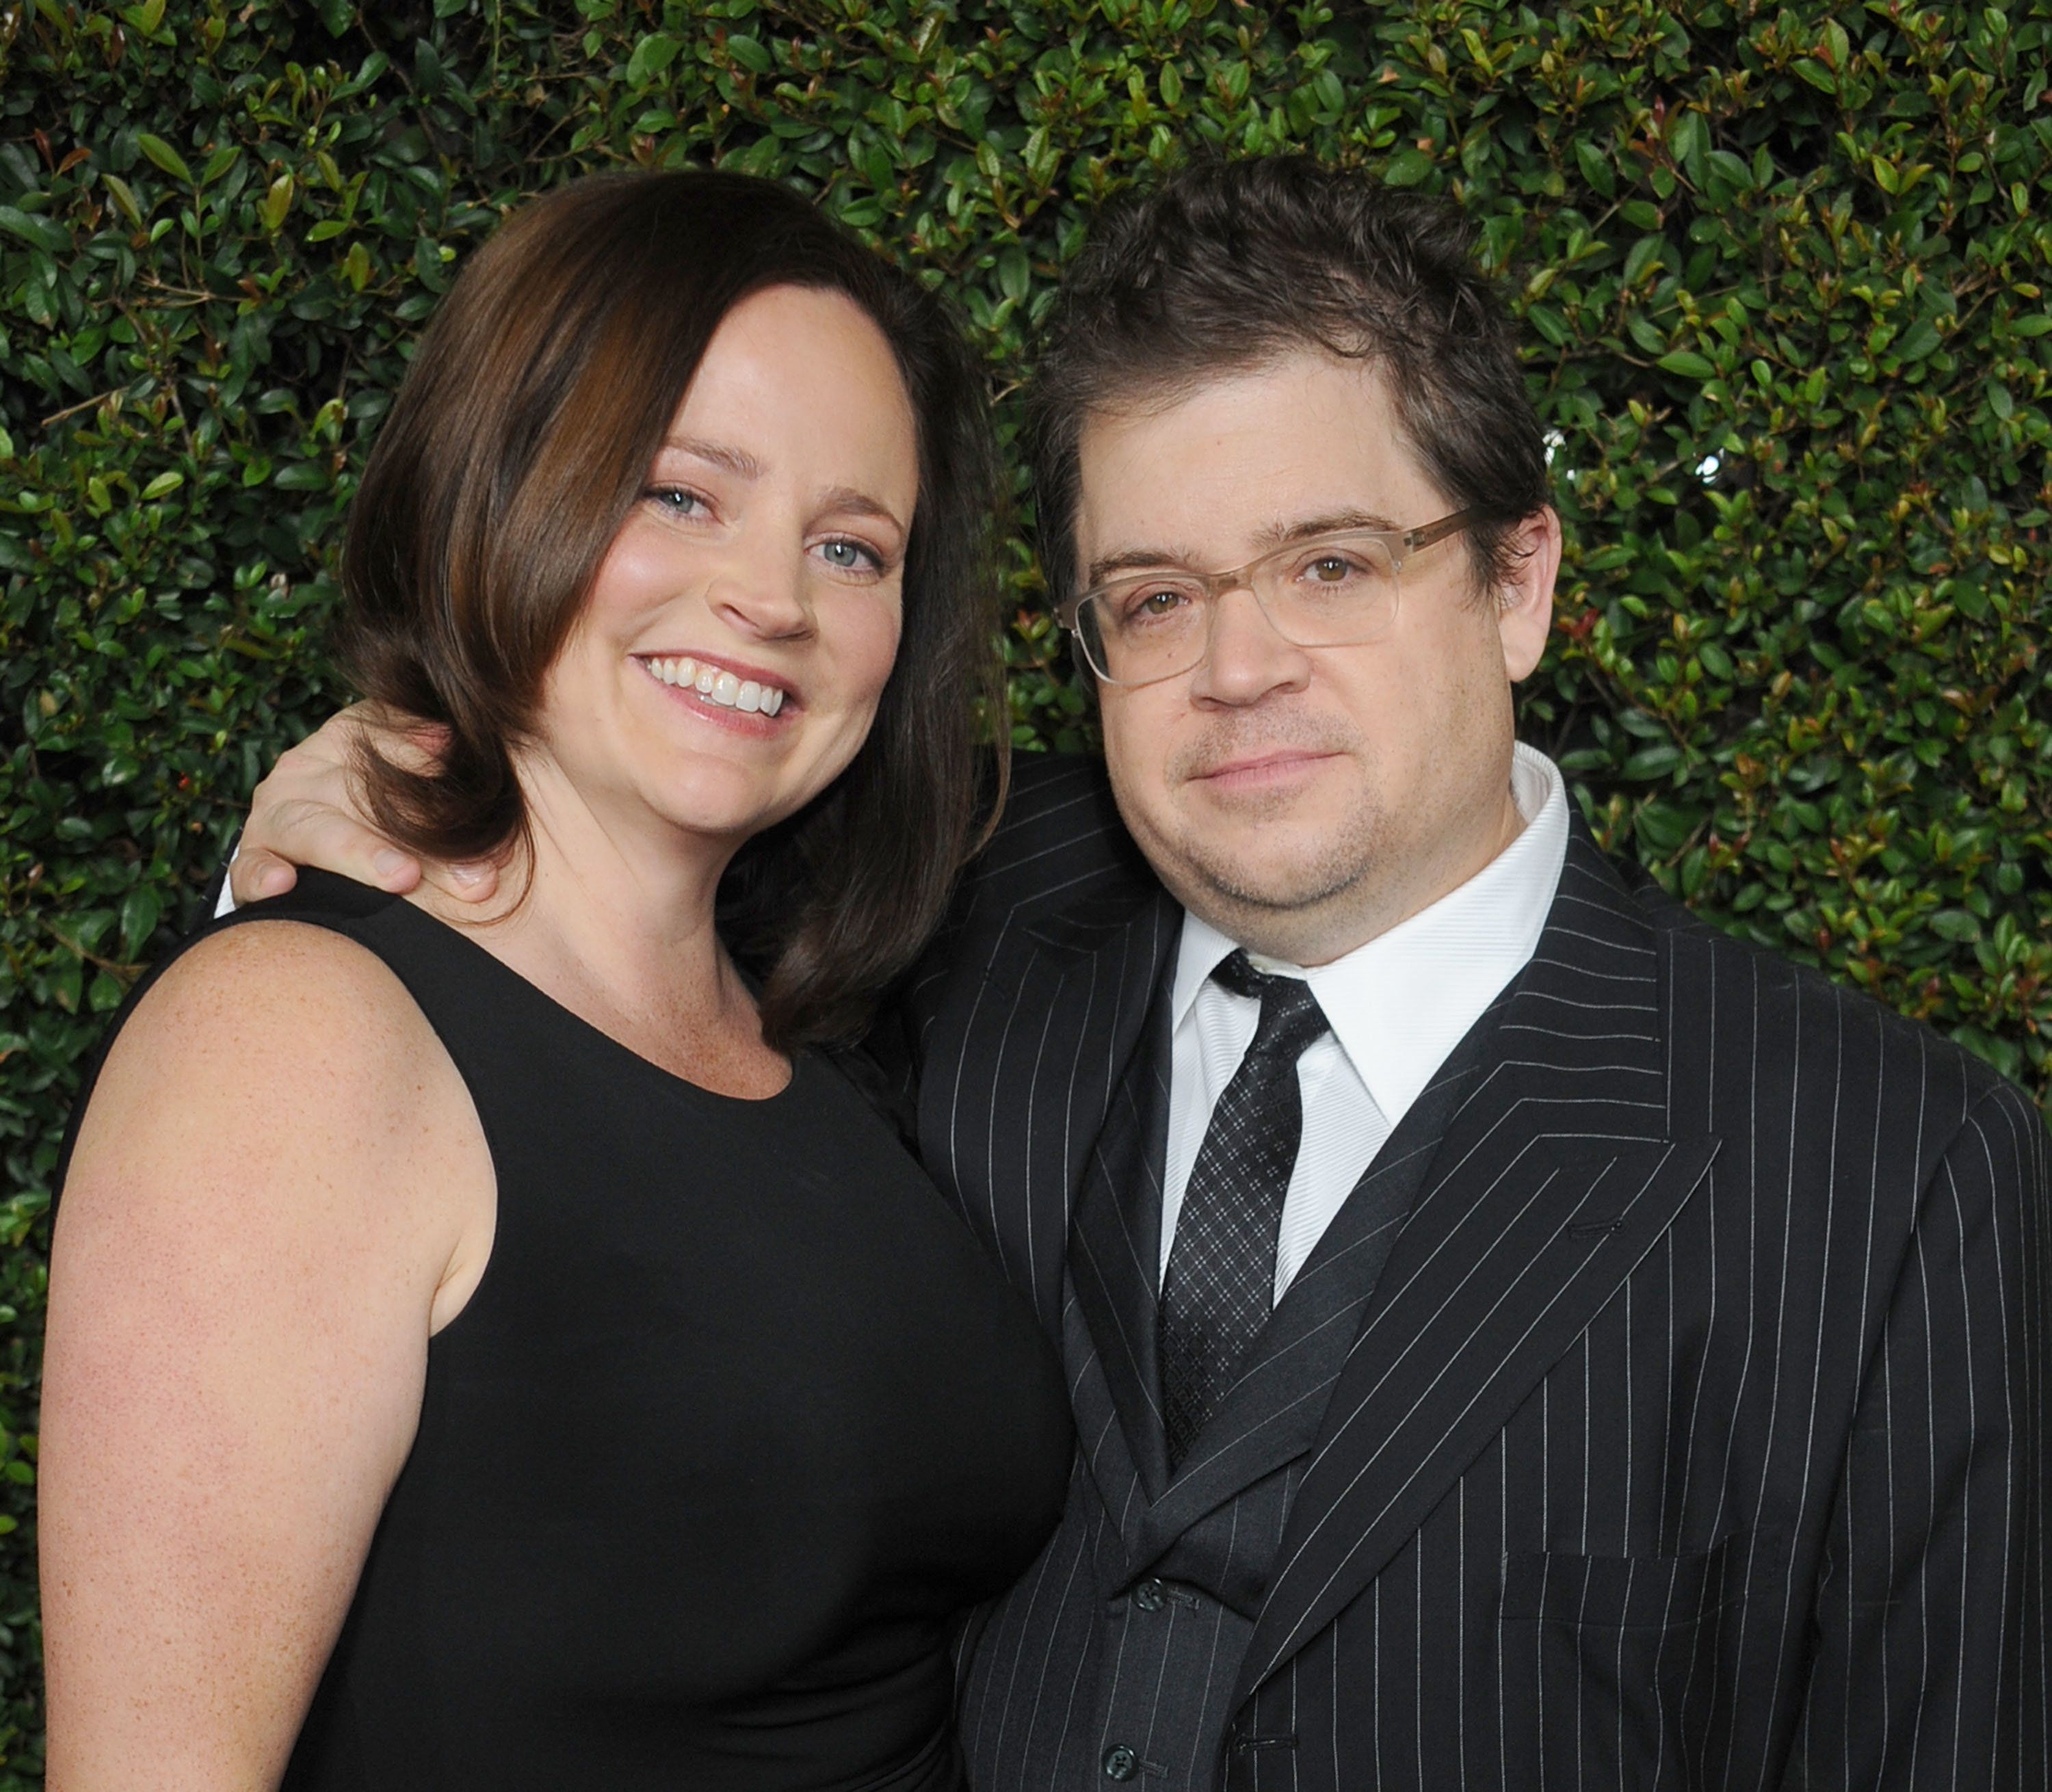 Michelle McNamara and her husband, Patton Oswalt, in December 2011. McNamara died in her sleep on April 21, 2016.